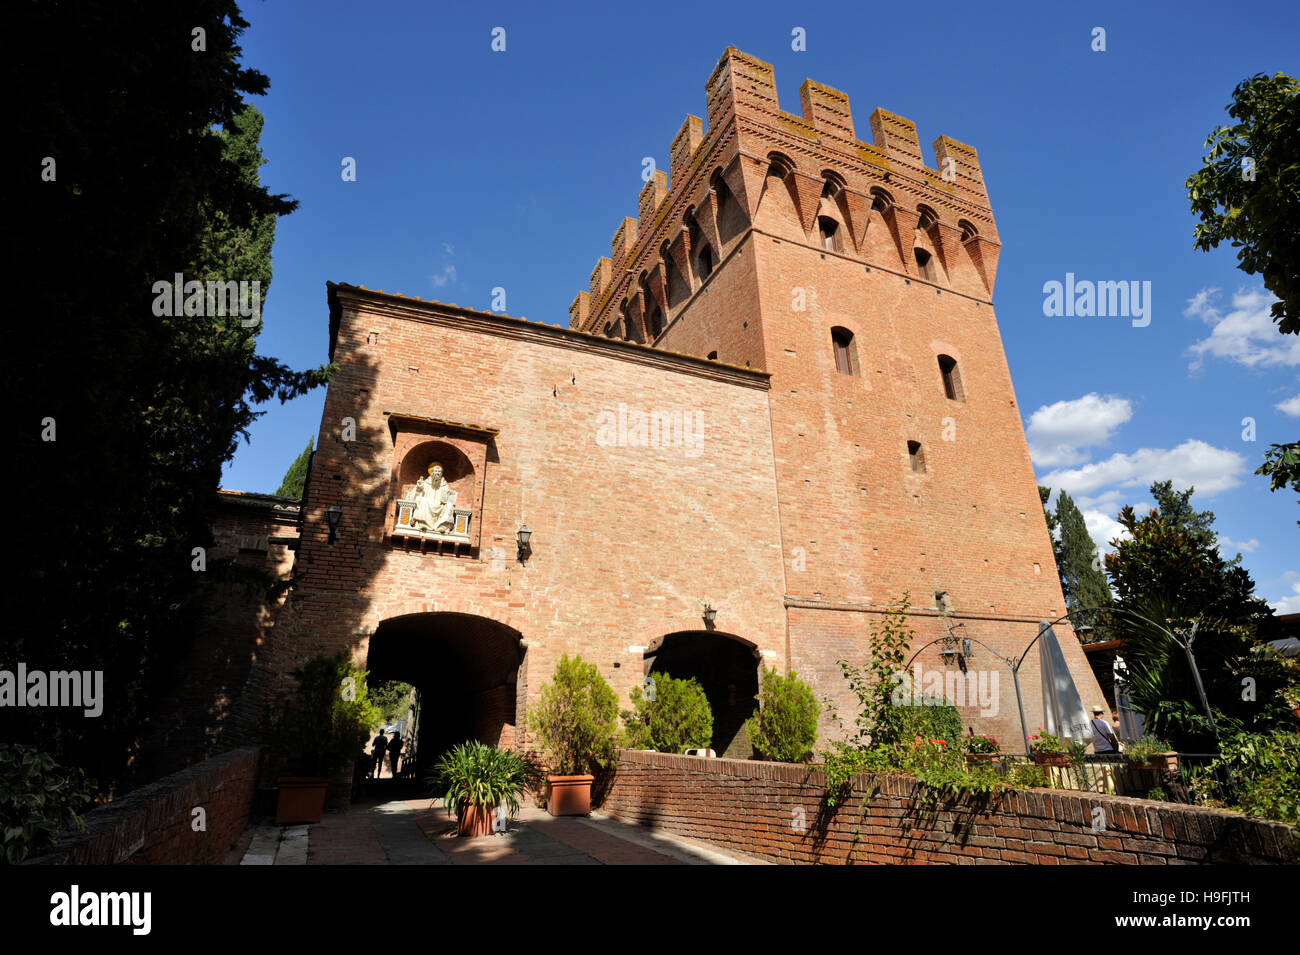 Abbey of Monte Oliveto Maggiore, tuscany, italy Stock Photo